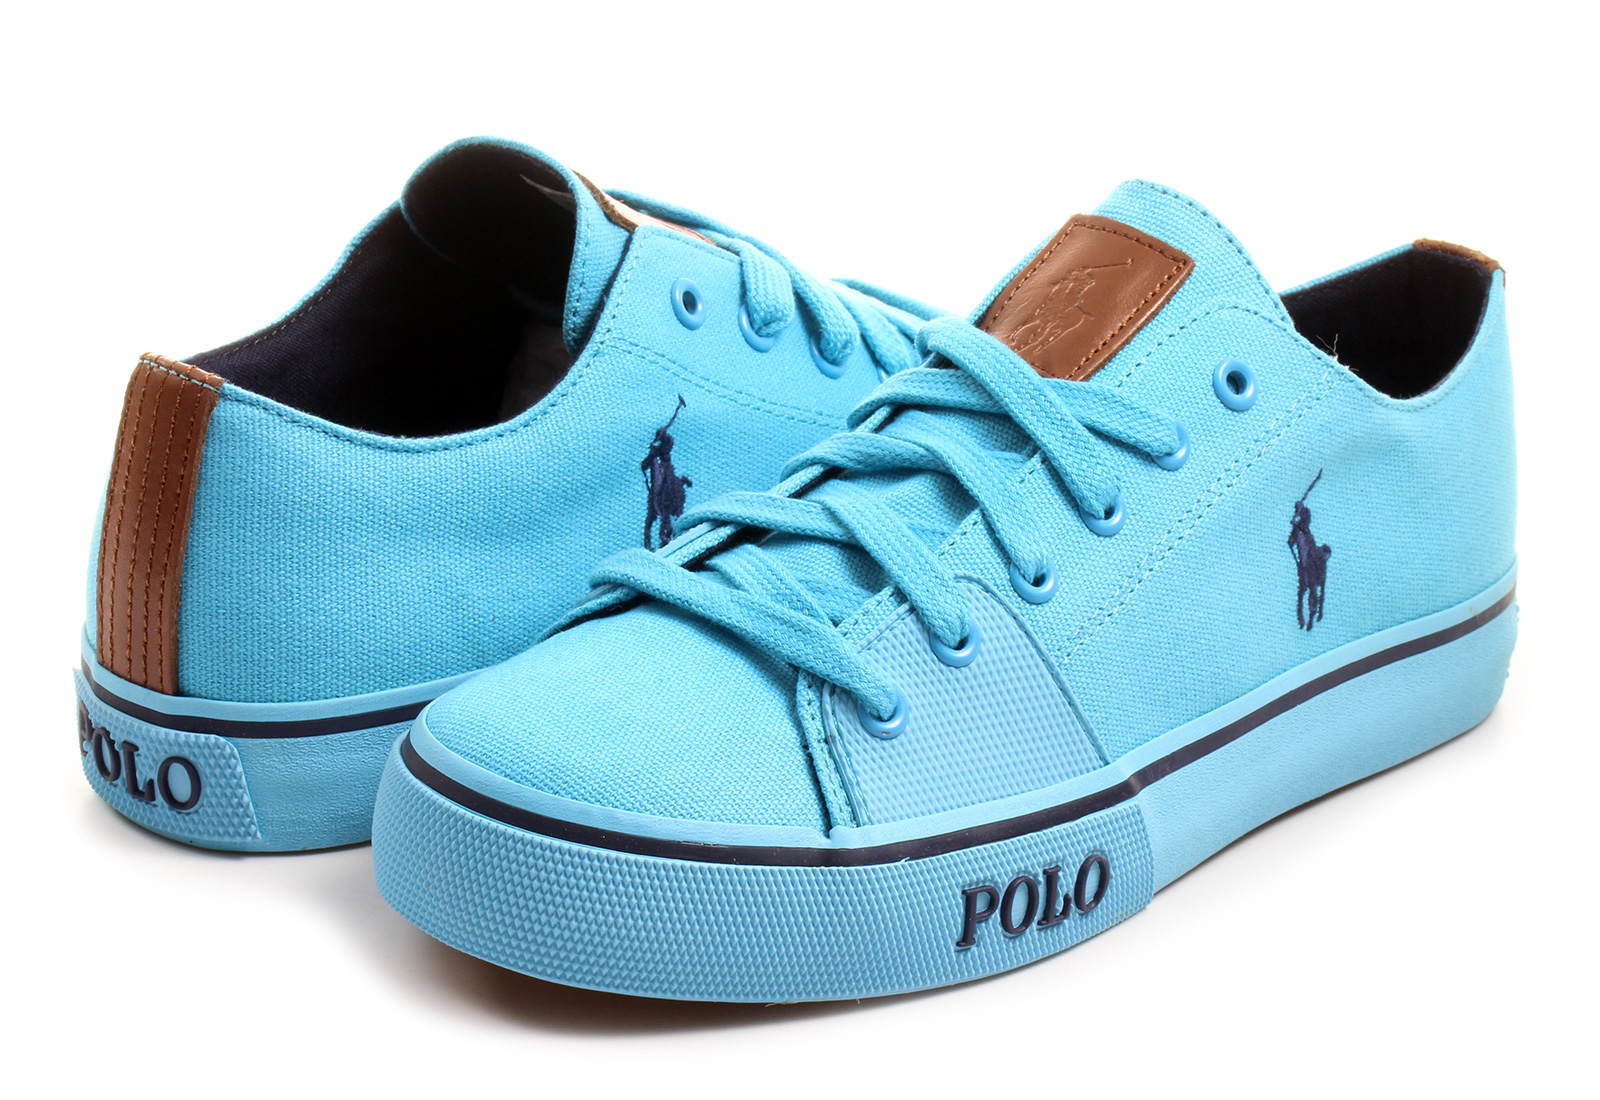 polo ralph lauren shoes cantor low 2003 c a4hg3 online shop for sneakers shoes and boots. Black Bedroom Furniture Sets. Home Design Ideas